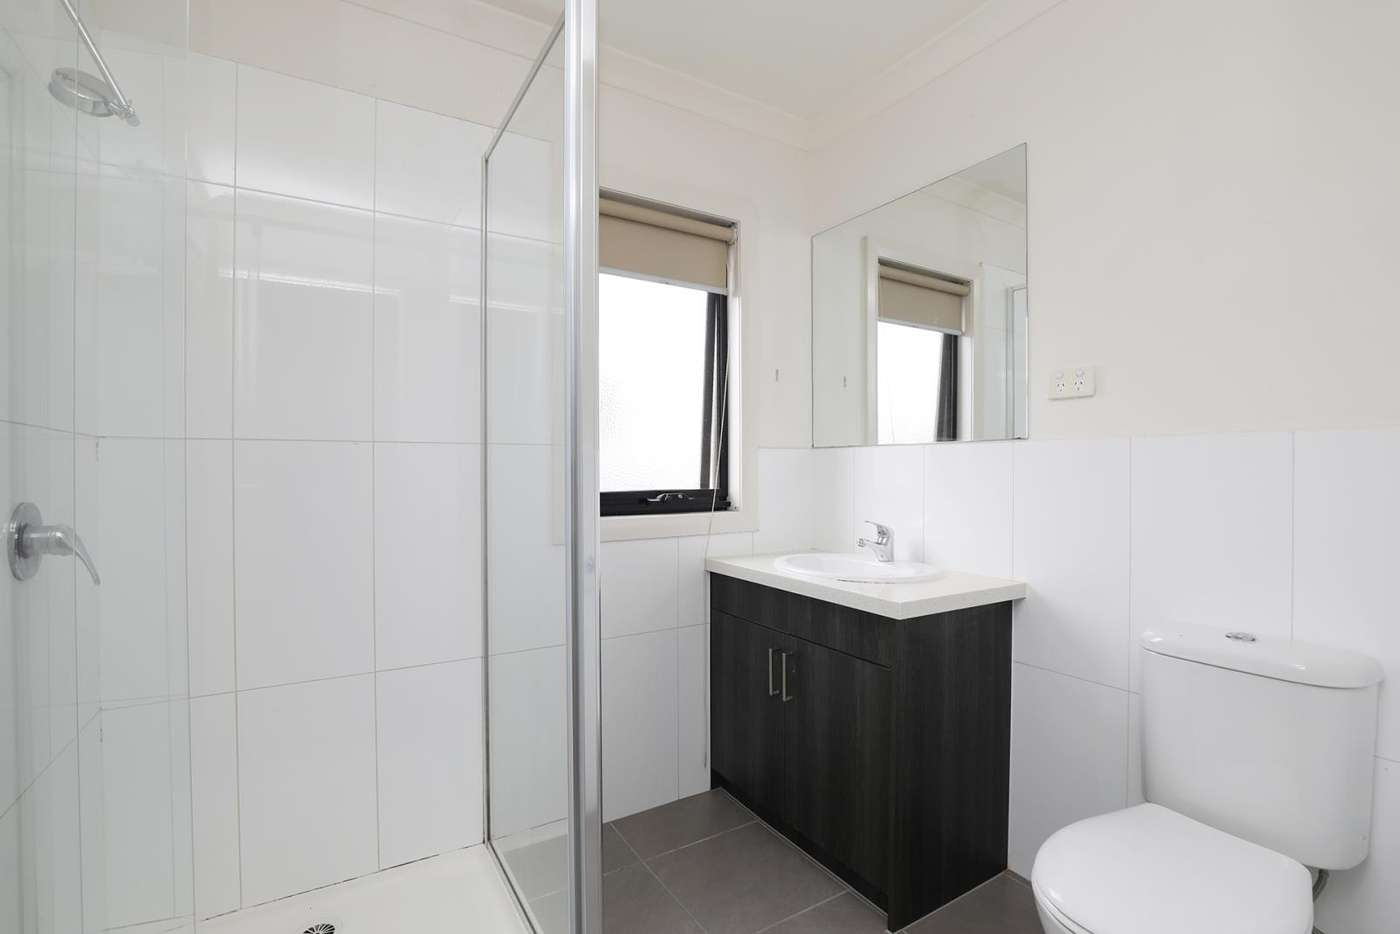 Fifth view of Homely townhouse listing, 23 Huntingfield Street, Craigieburn VIC 3064